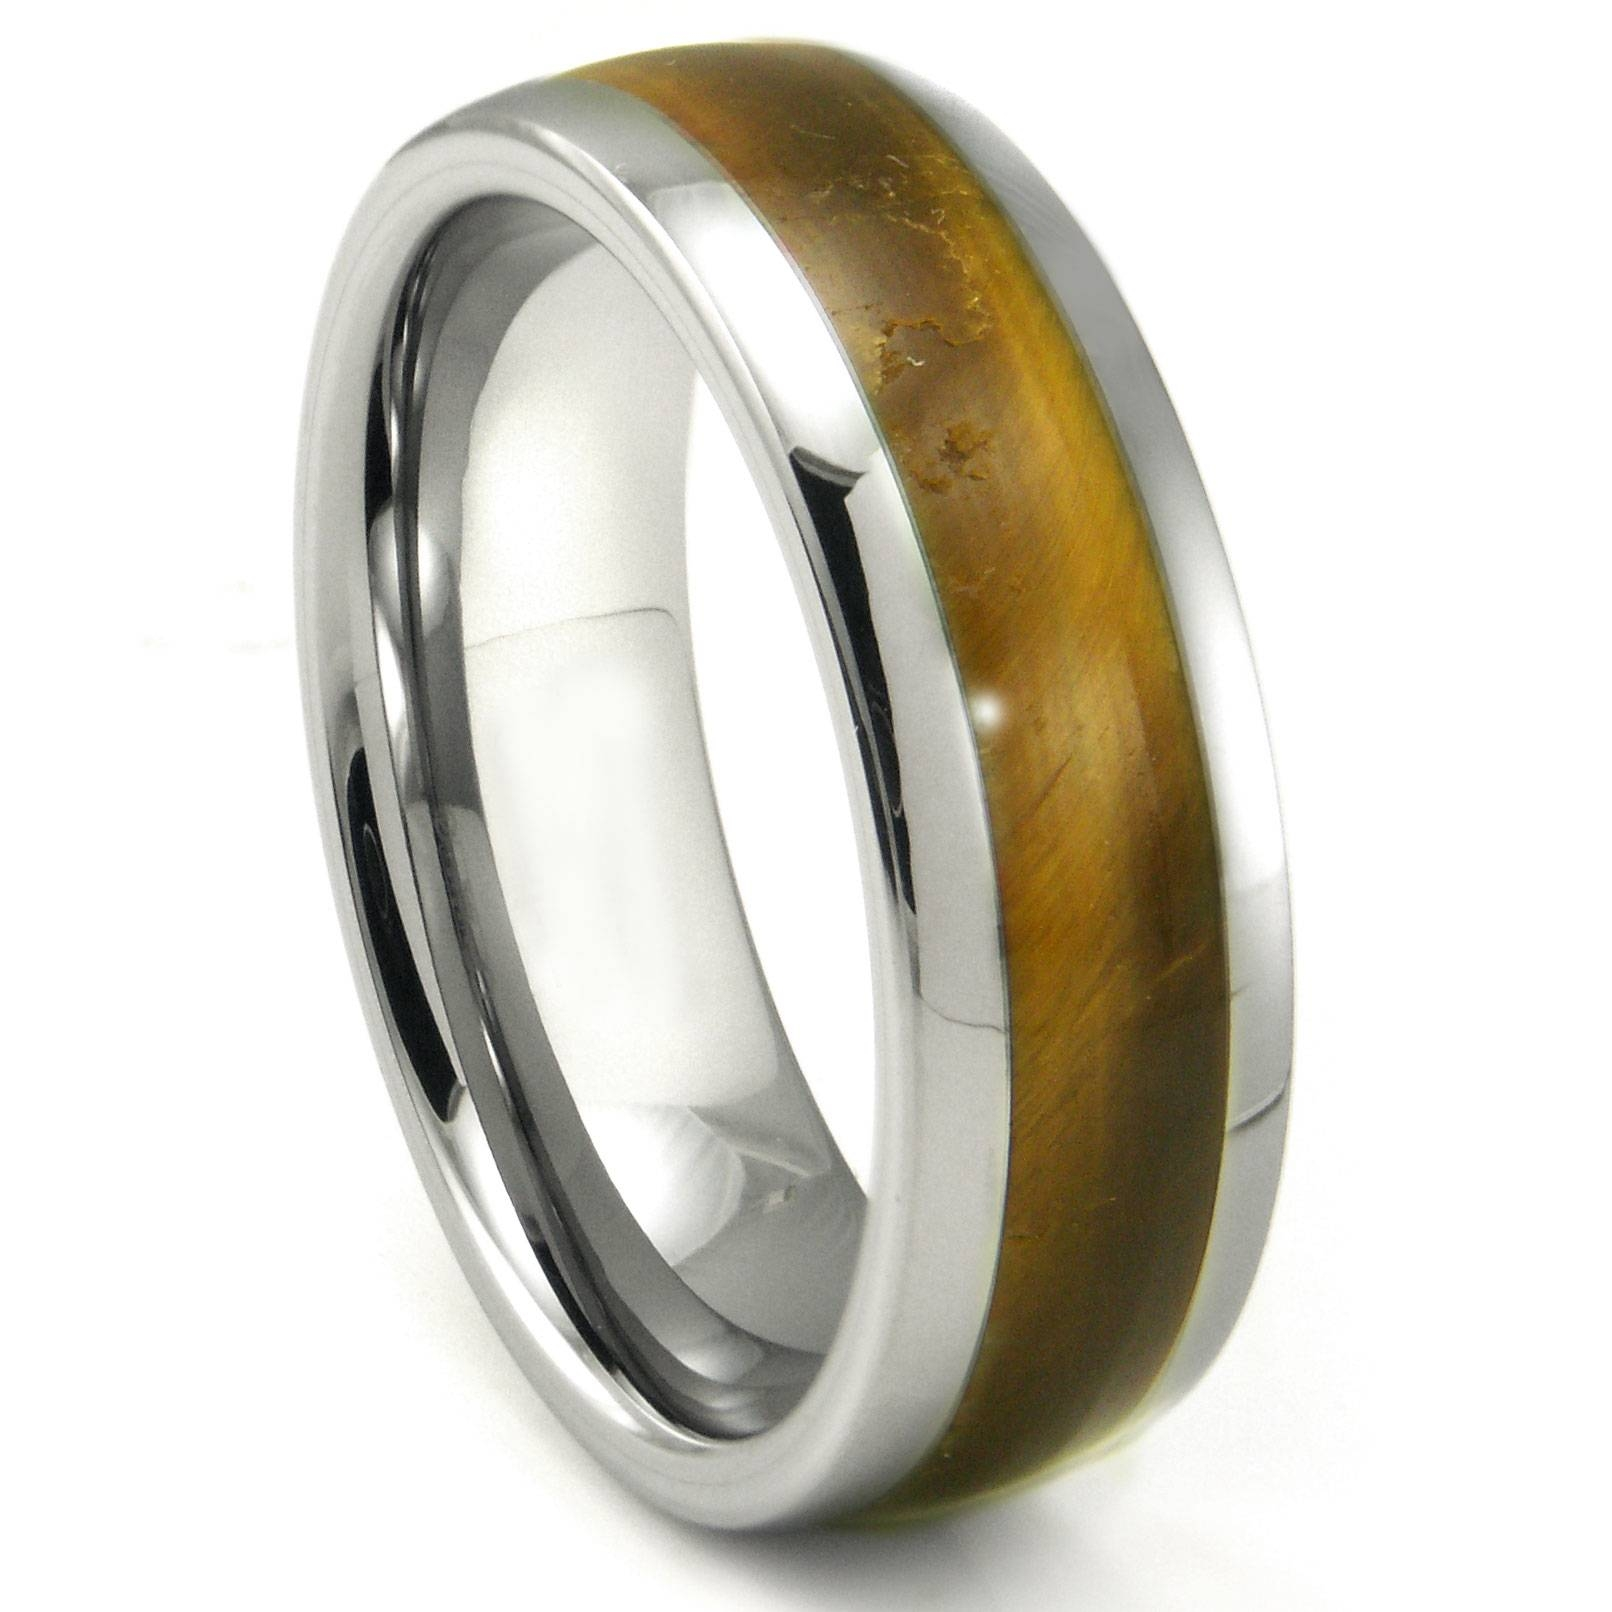 Tungsten Carbide Tiger Eye Inlay Dome Wedding Band Ring Throughout Titanium Wedding Bands For Men (View 13 of 15)